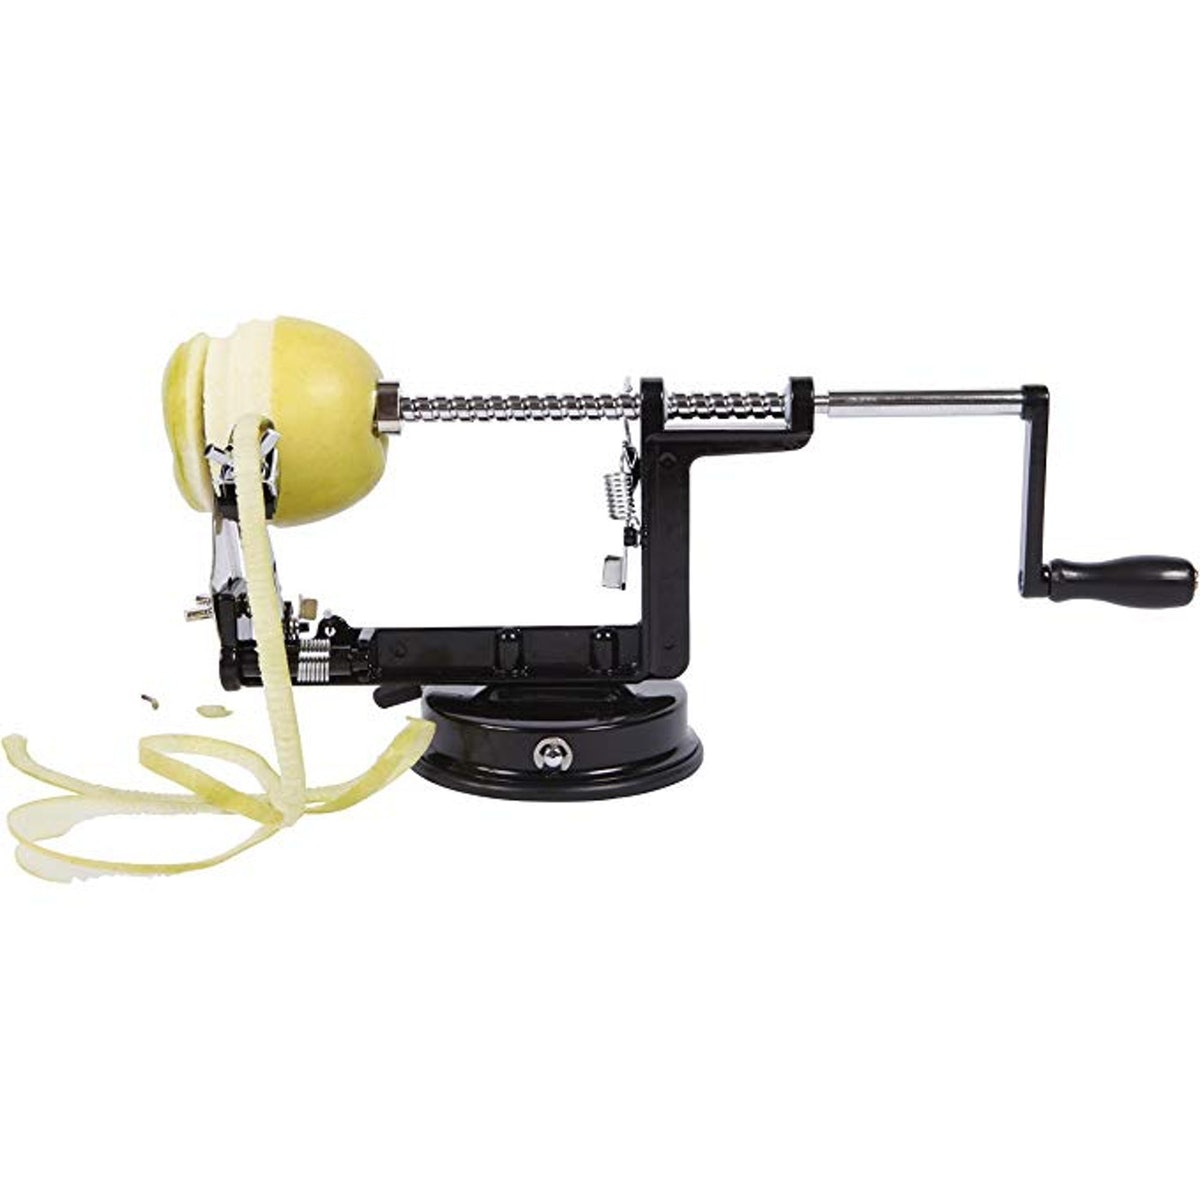 Precision Kitchenware Stainless Steel Apple Peeler Corer and Slicer